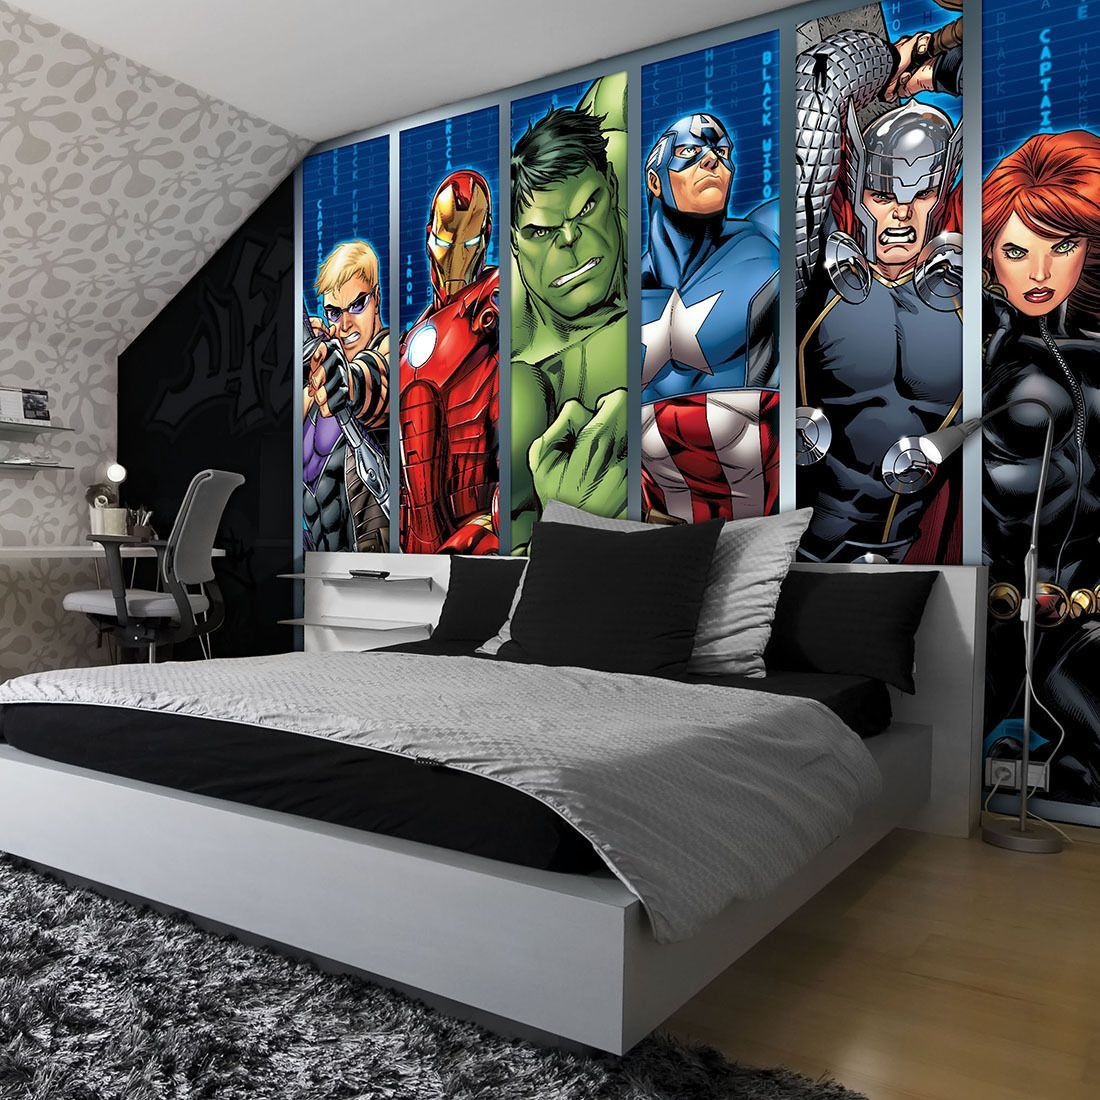 19 Avengers Bedroom Ideas Most Amazing and also Lovely